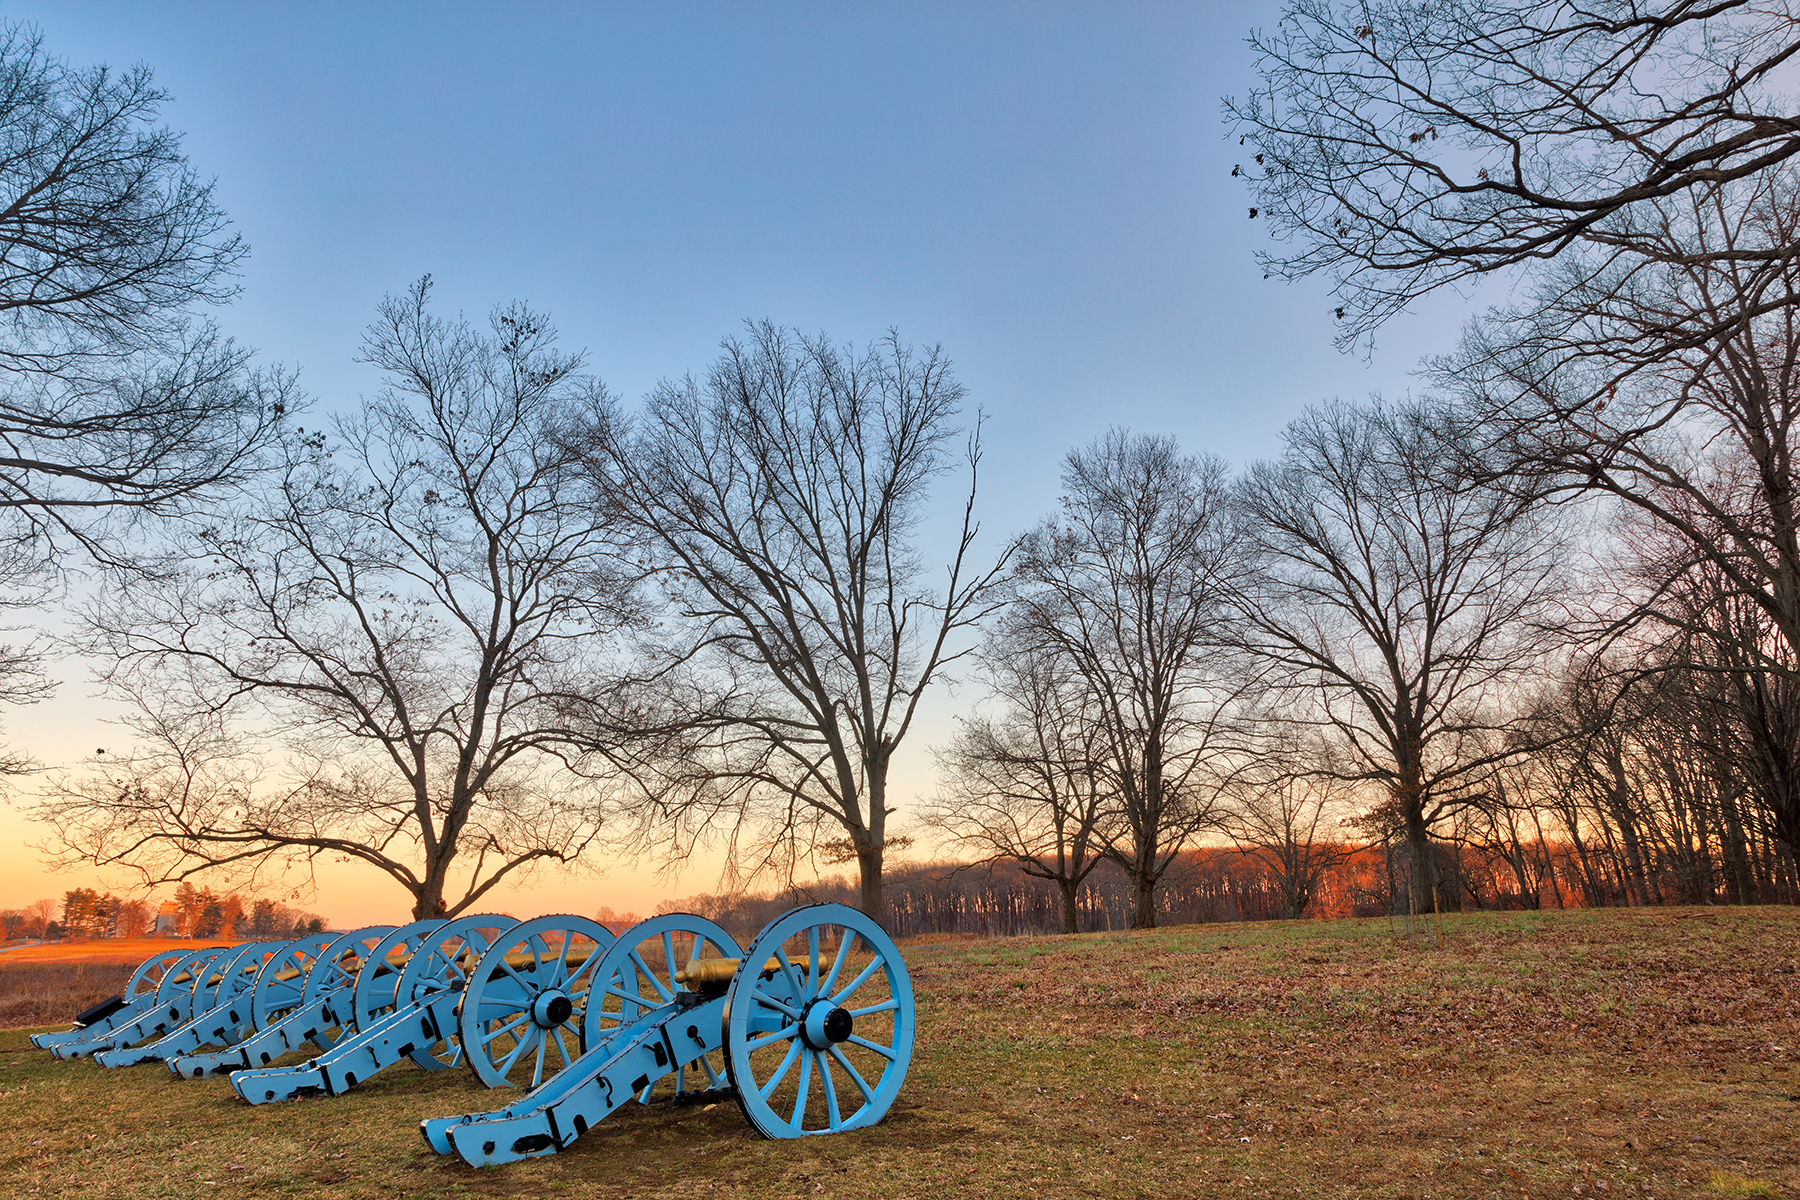 Valley forge cannon twilight - hdr photo